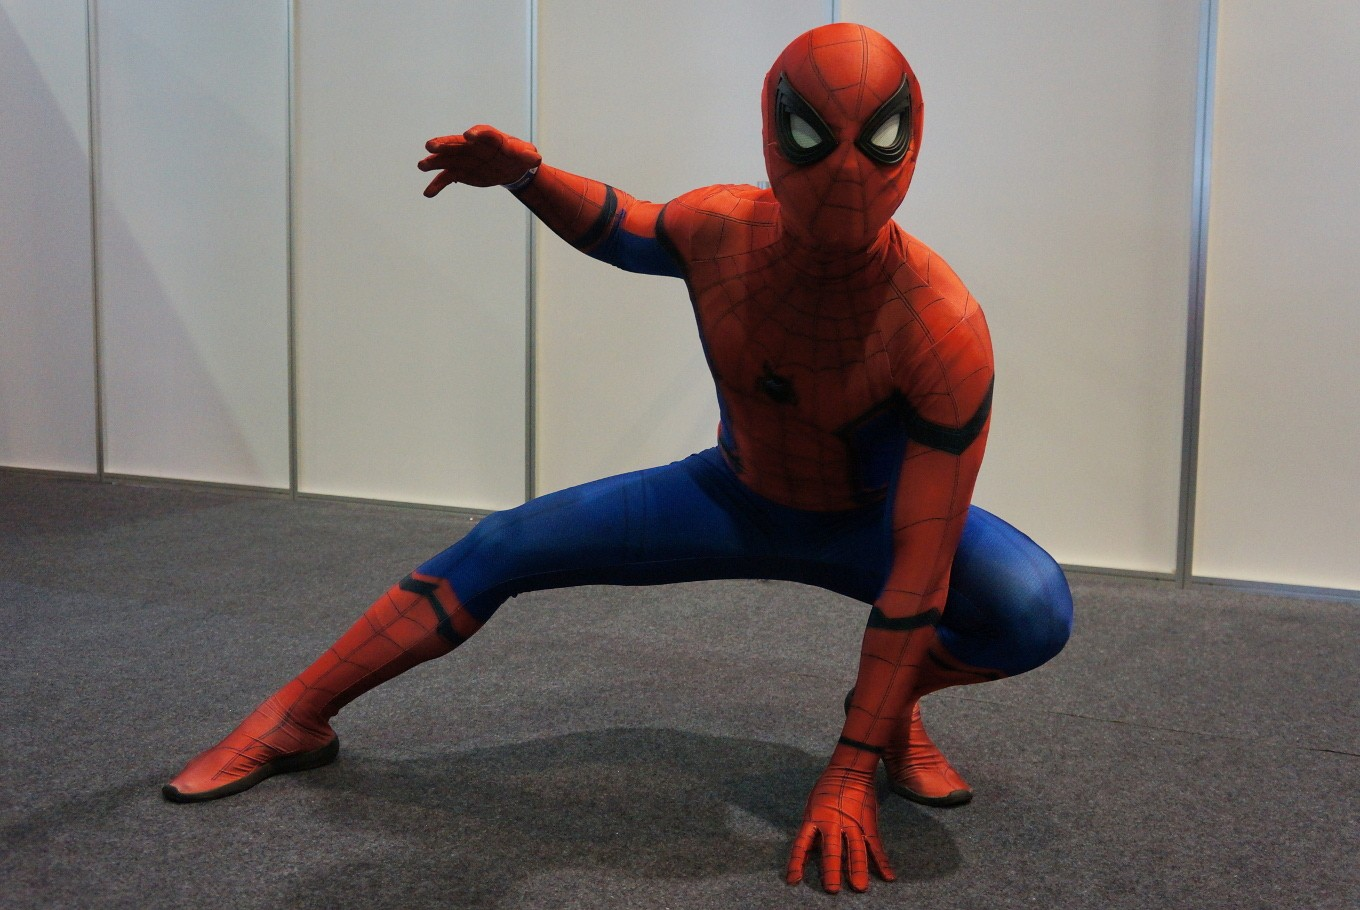 A cosplayer crouches as Spider-Man during  the 2017 Indonesia Comic Con.